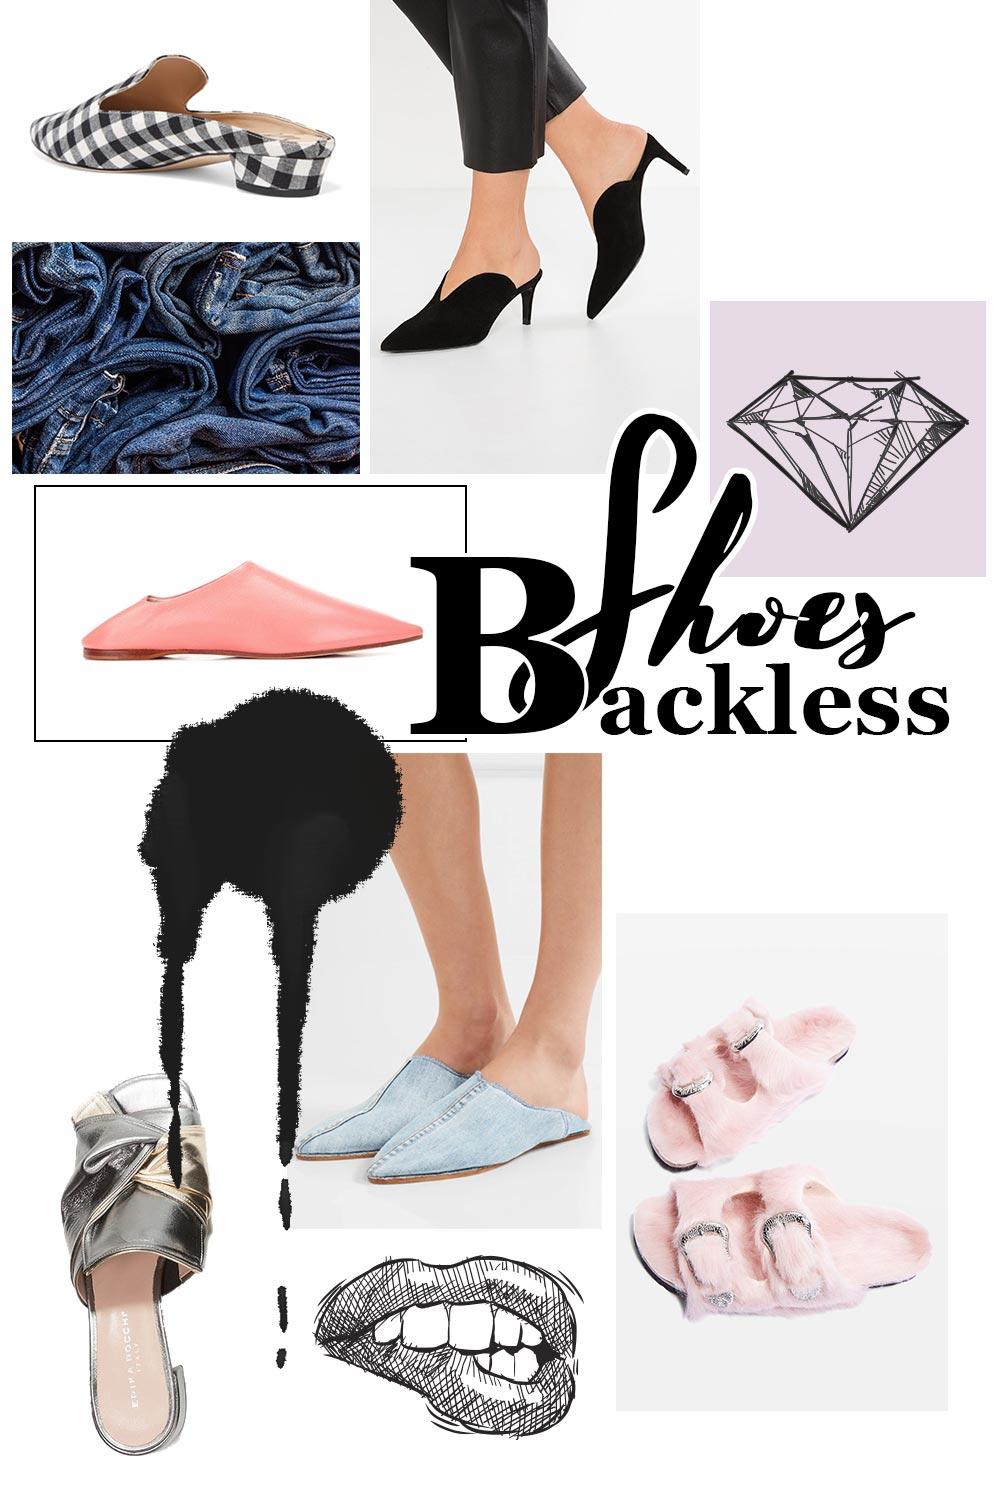 Fashion Mood Board Backless Shoes, Slipper, Pantoletten, Trend 2017, Fashion Trends Moodboard, Modetrends Inspiration, Style Blog, Modeblog, Fashion Blog, Inspiration, www.whoismocca.com